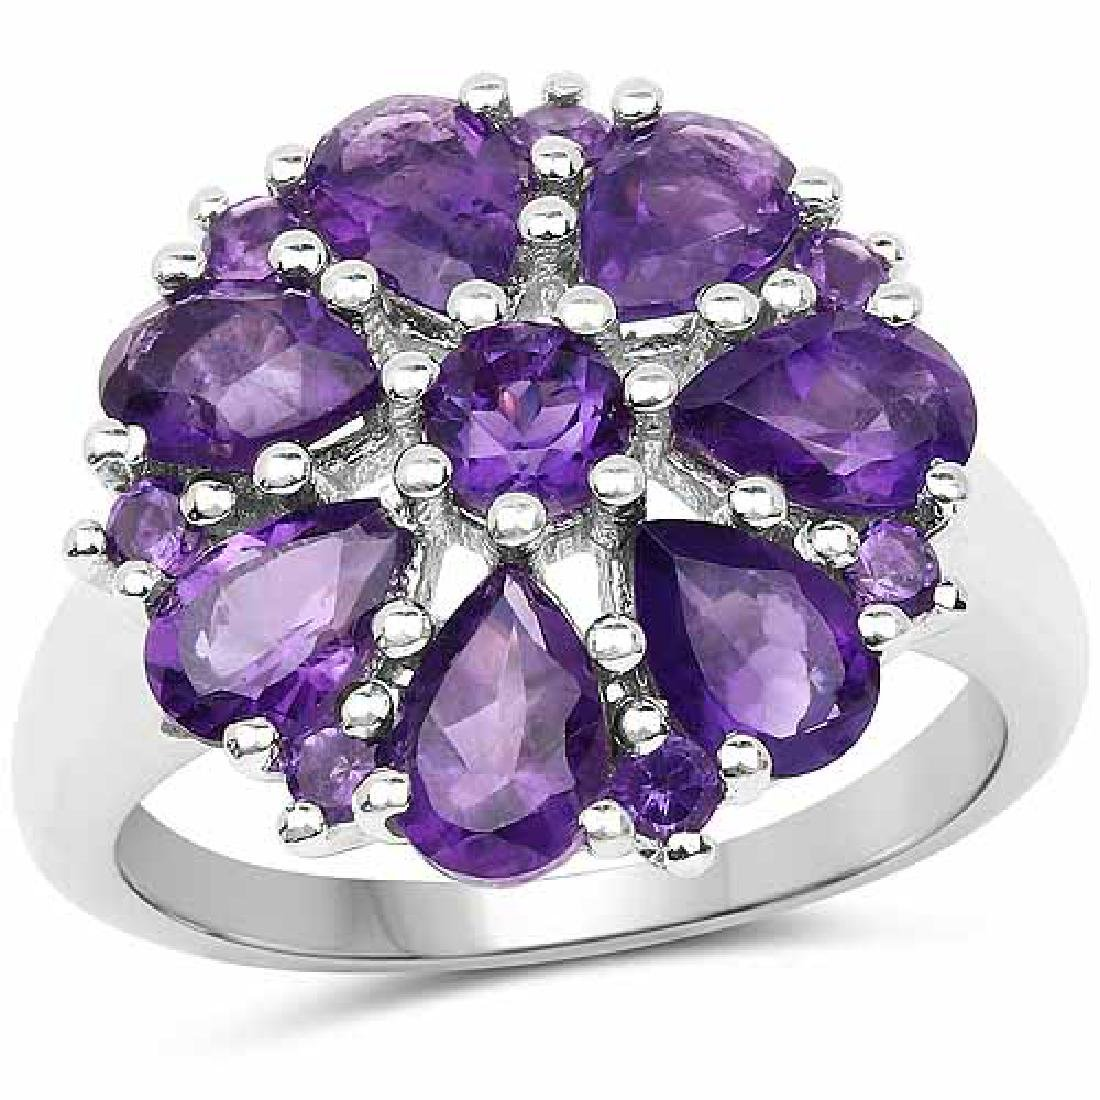 3.04 Carat Genuine Amethyst .925 Sterling Silver Ring